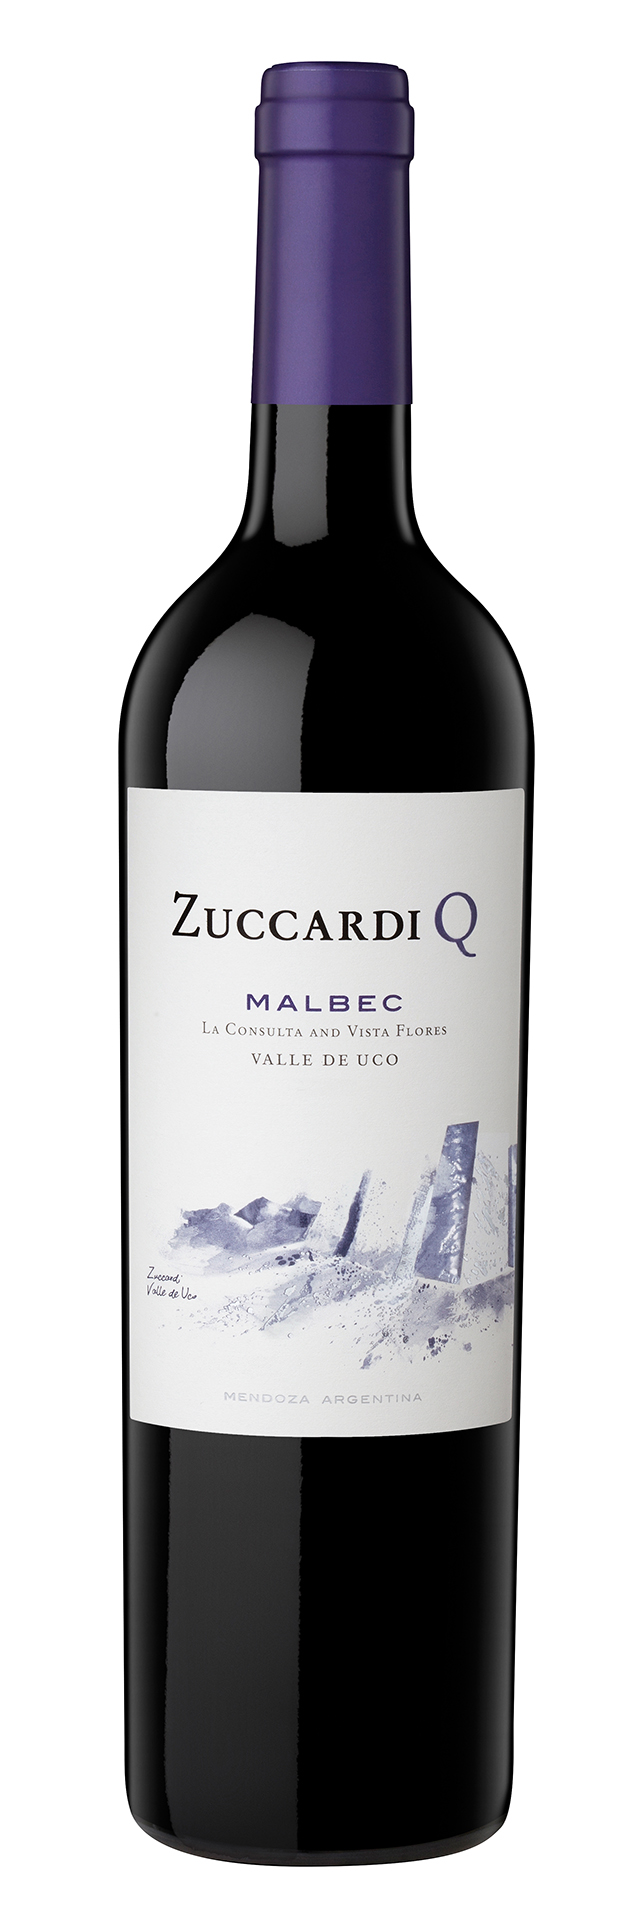 Zuccard Q Malbec - with intense red and black fruit aromas by Winesellers Ltd.